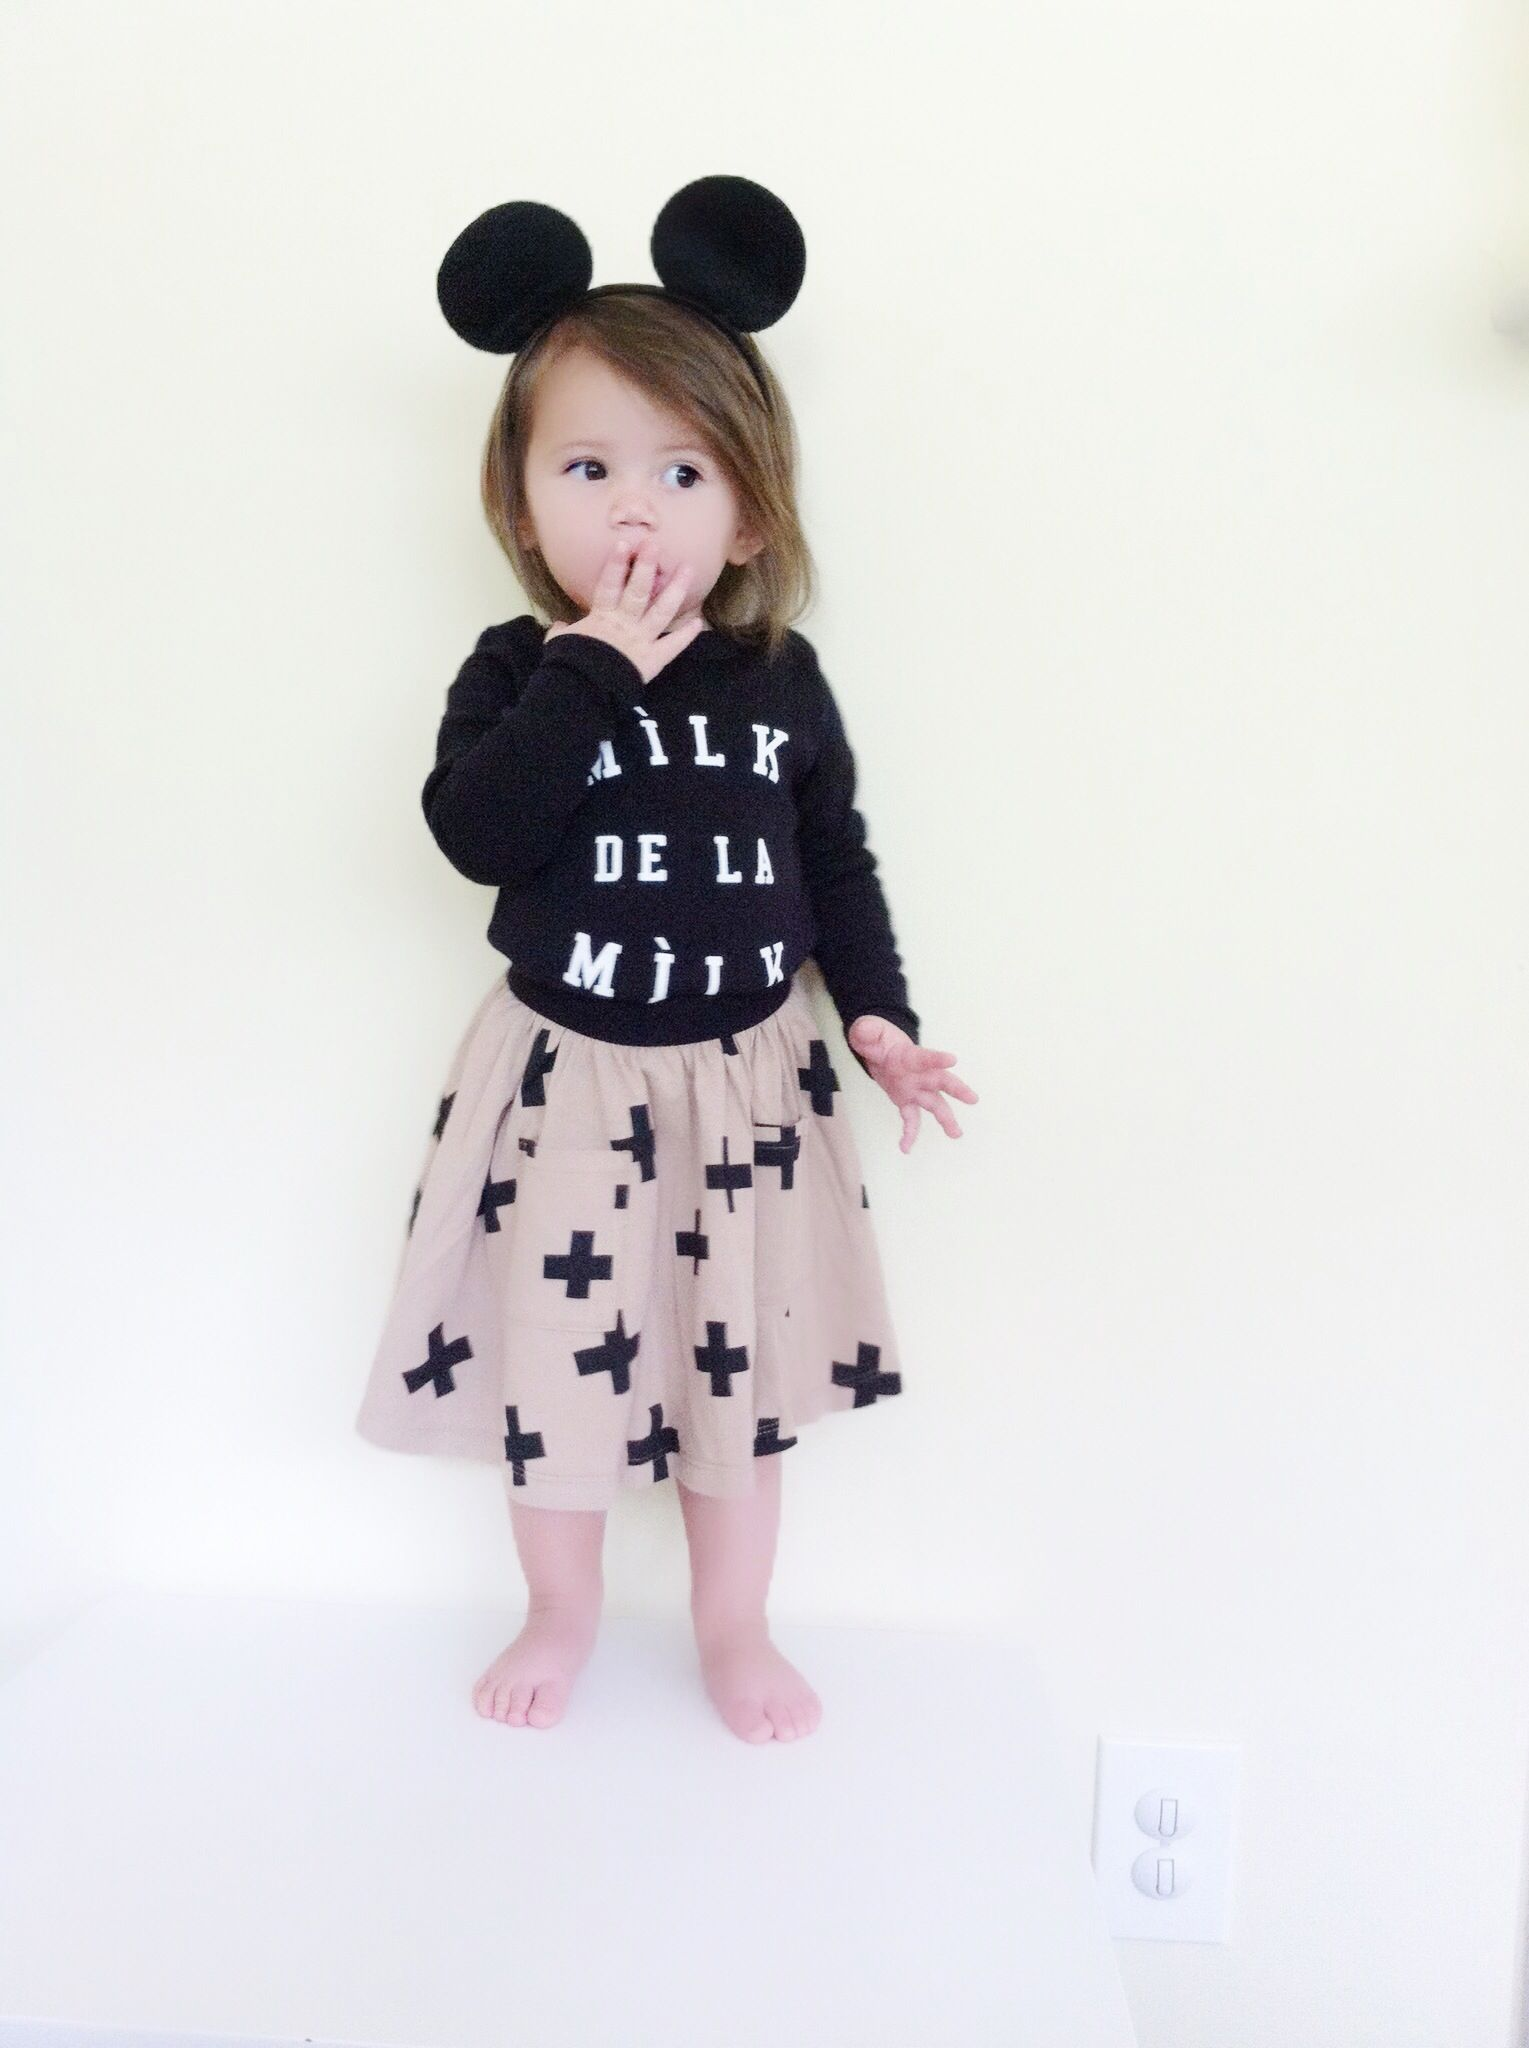 Black milk de la milk shirt girls boys modern trendy chic clothing